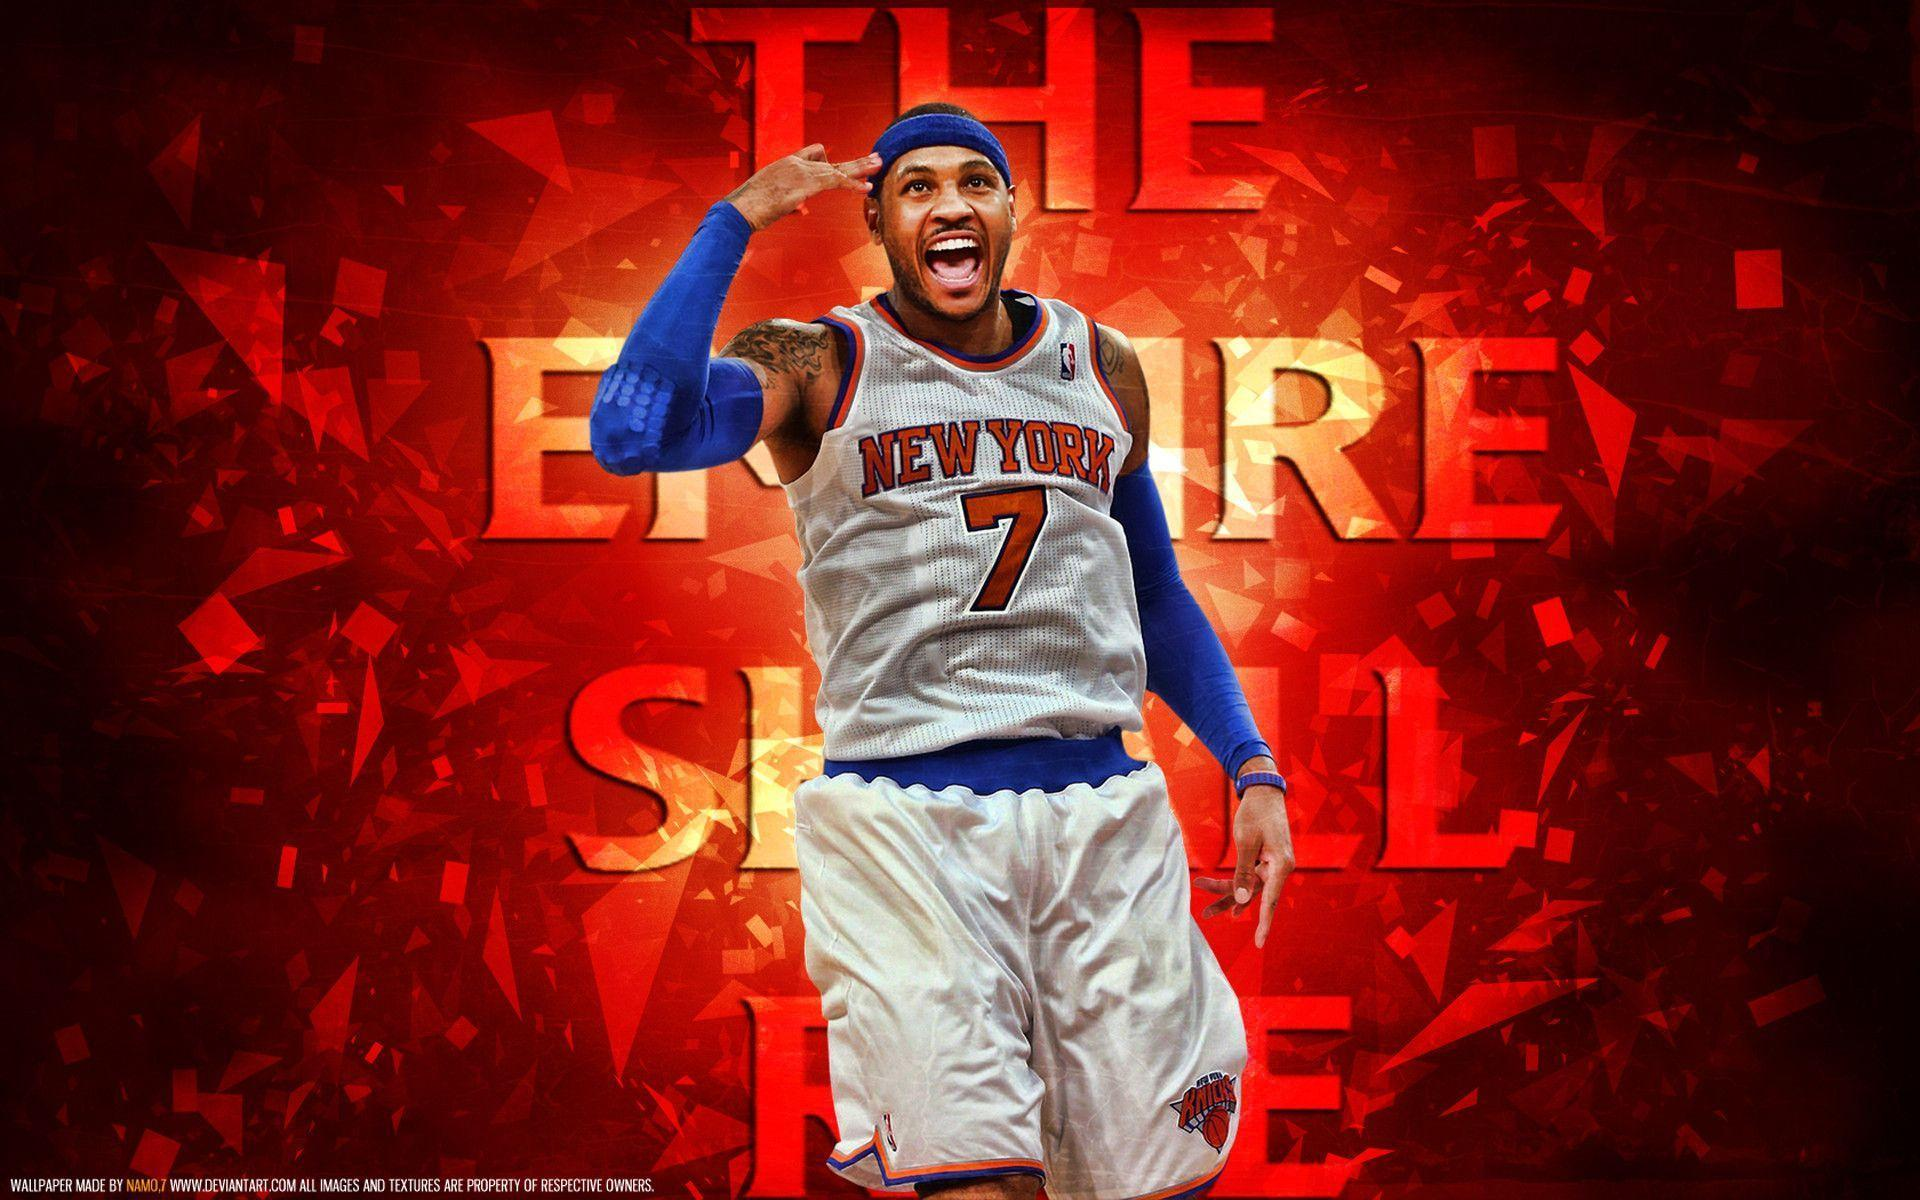 Cool 3d Fire Wallpaper Desktop Carmelo Anthony Wallpapers Wallpaper Cave